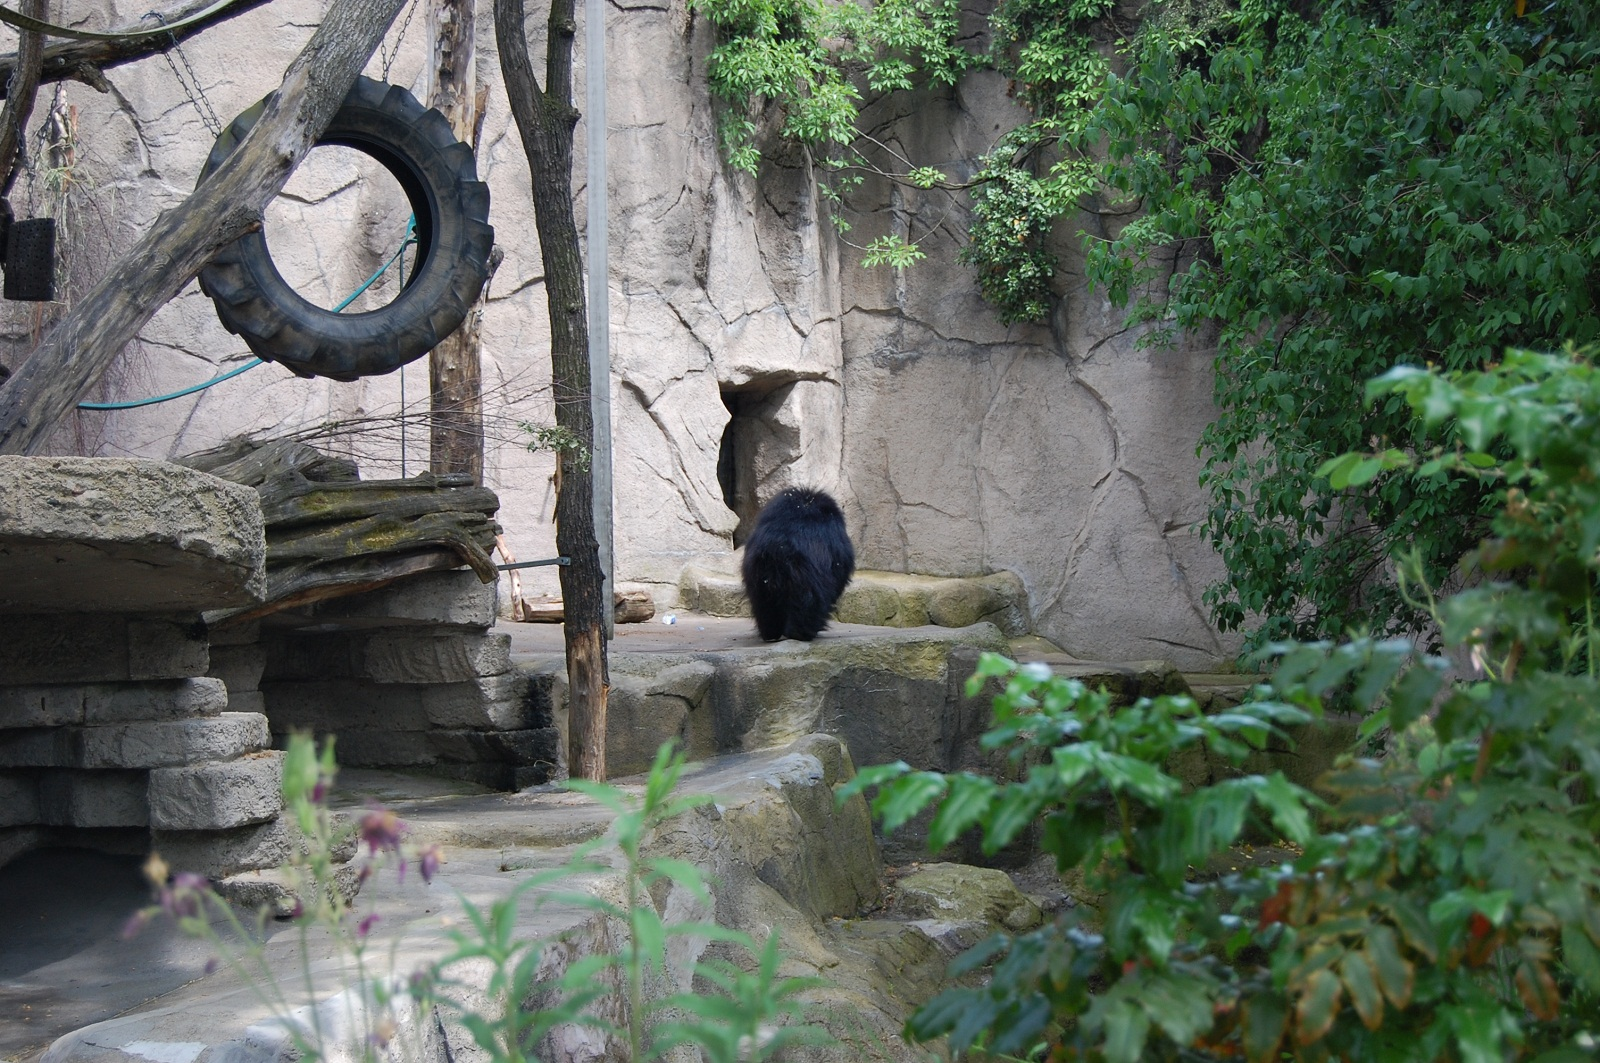 Frankfurt Zoo, Germany, Black bear (2)